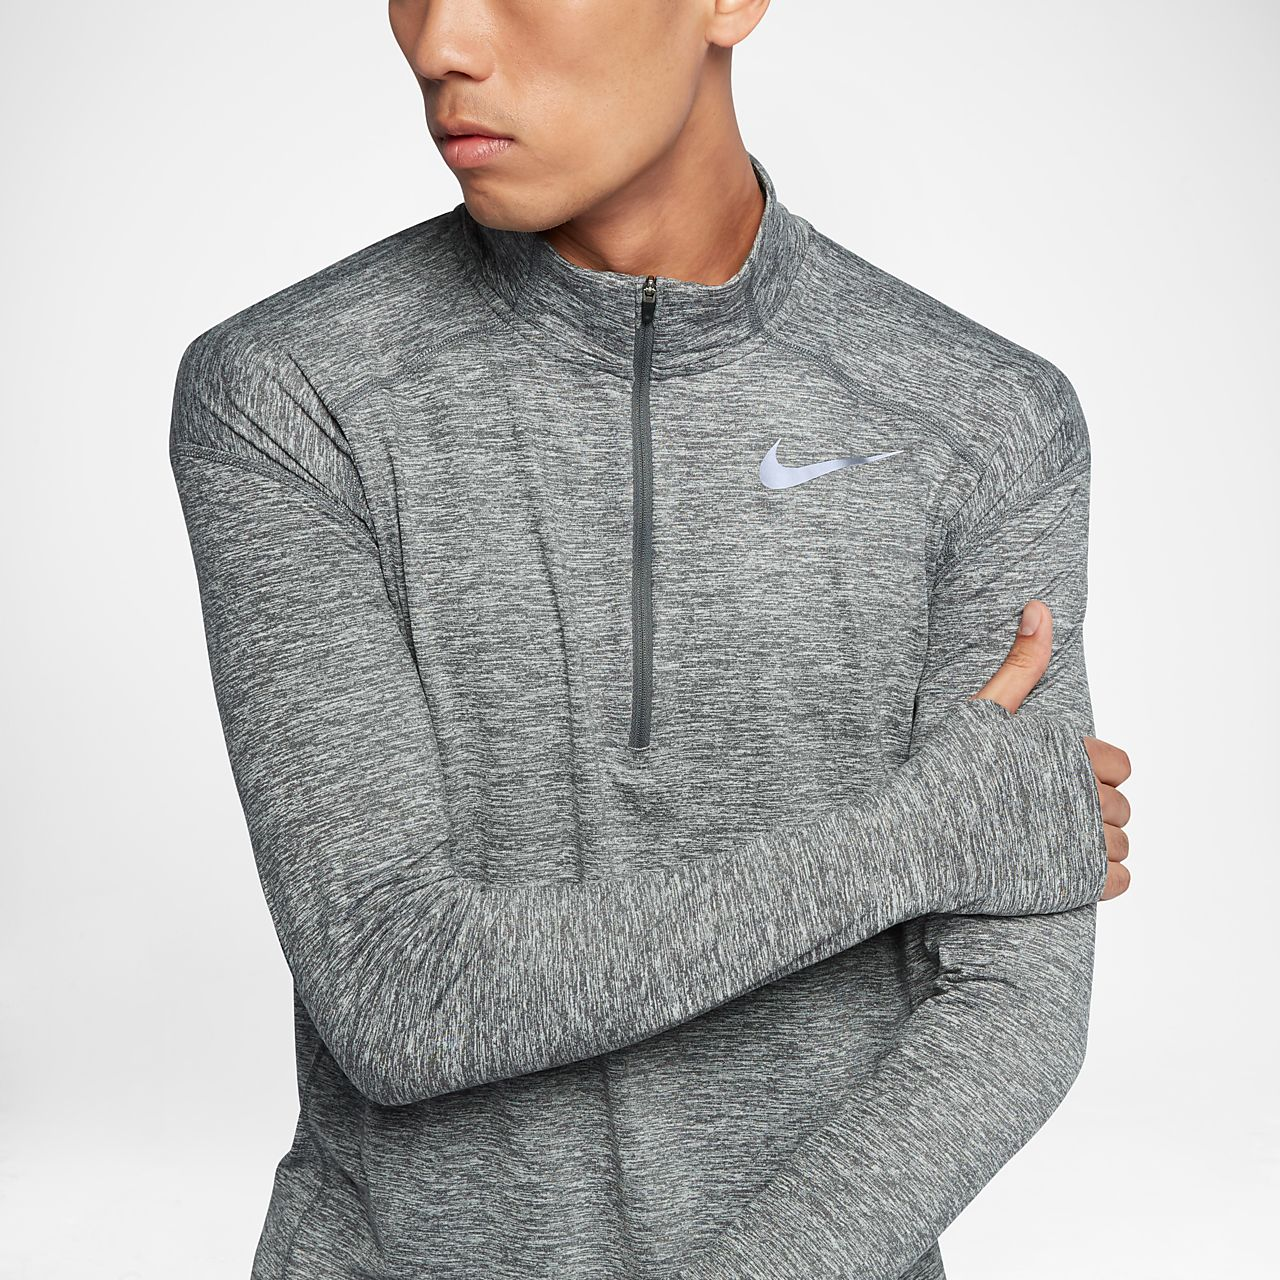 Nike Dri-FIT Element Half-Zip